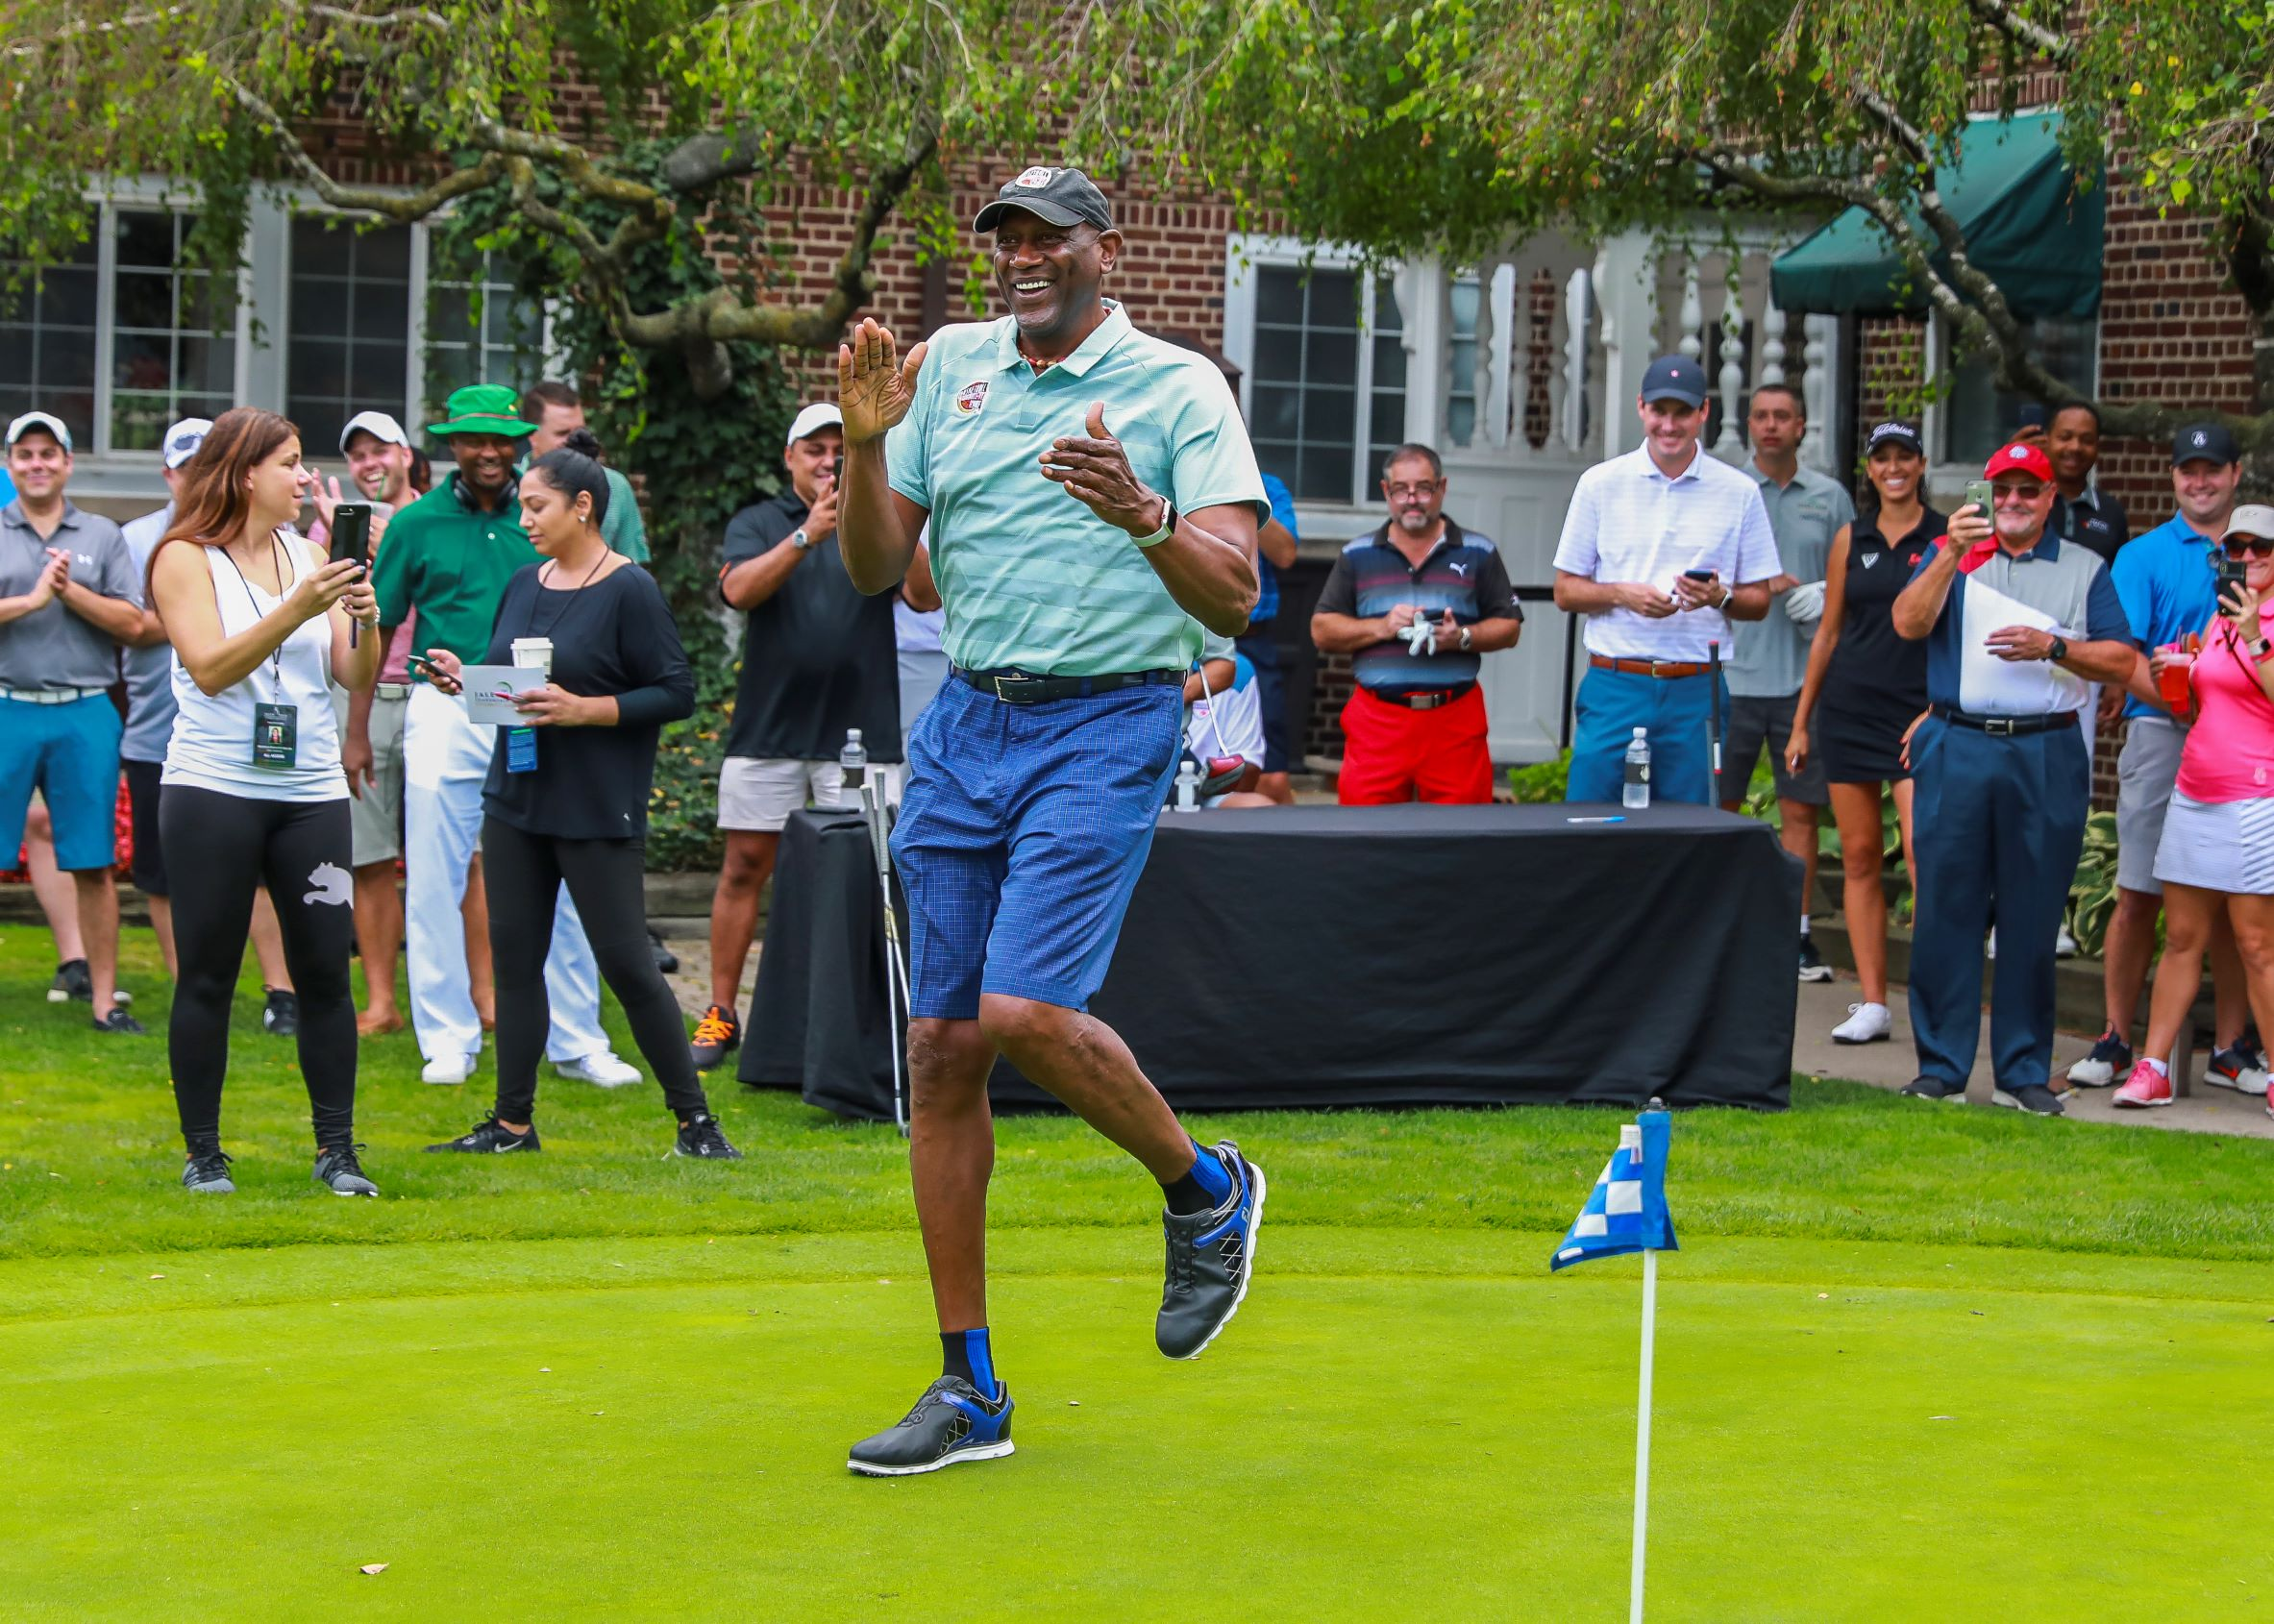 The Jalen Rose Golf Classic Presented By Tom Gores